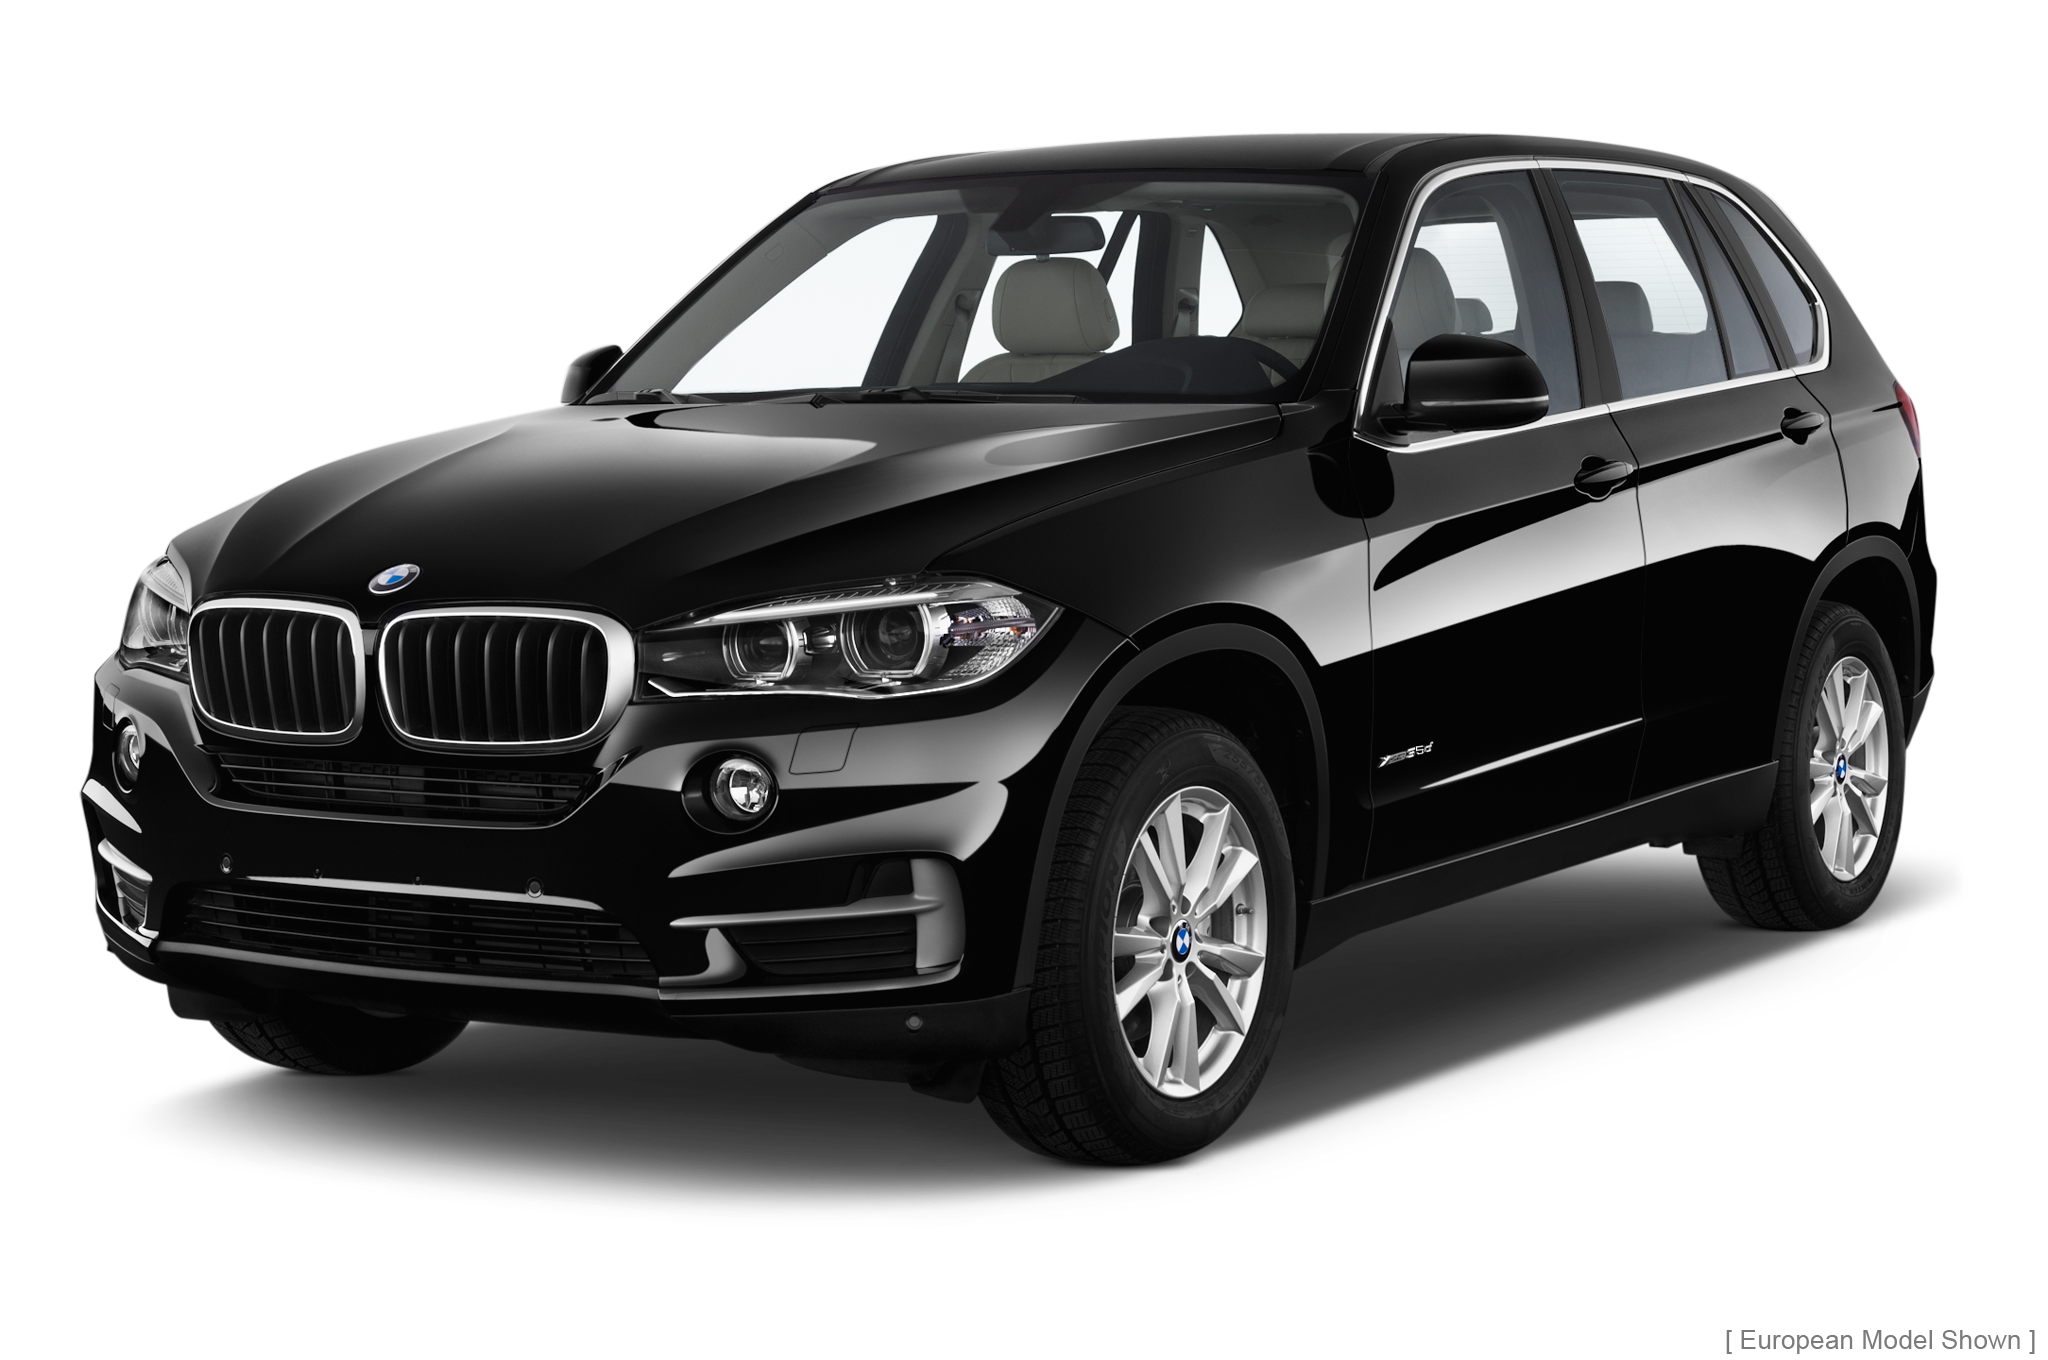 Bmw 2016 png. X reviews and